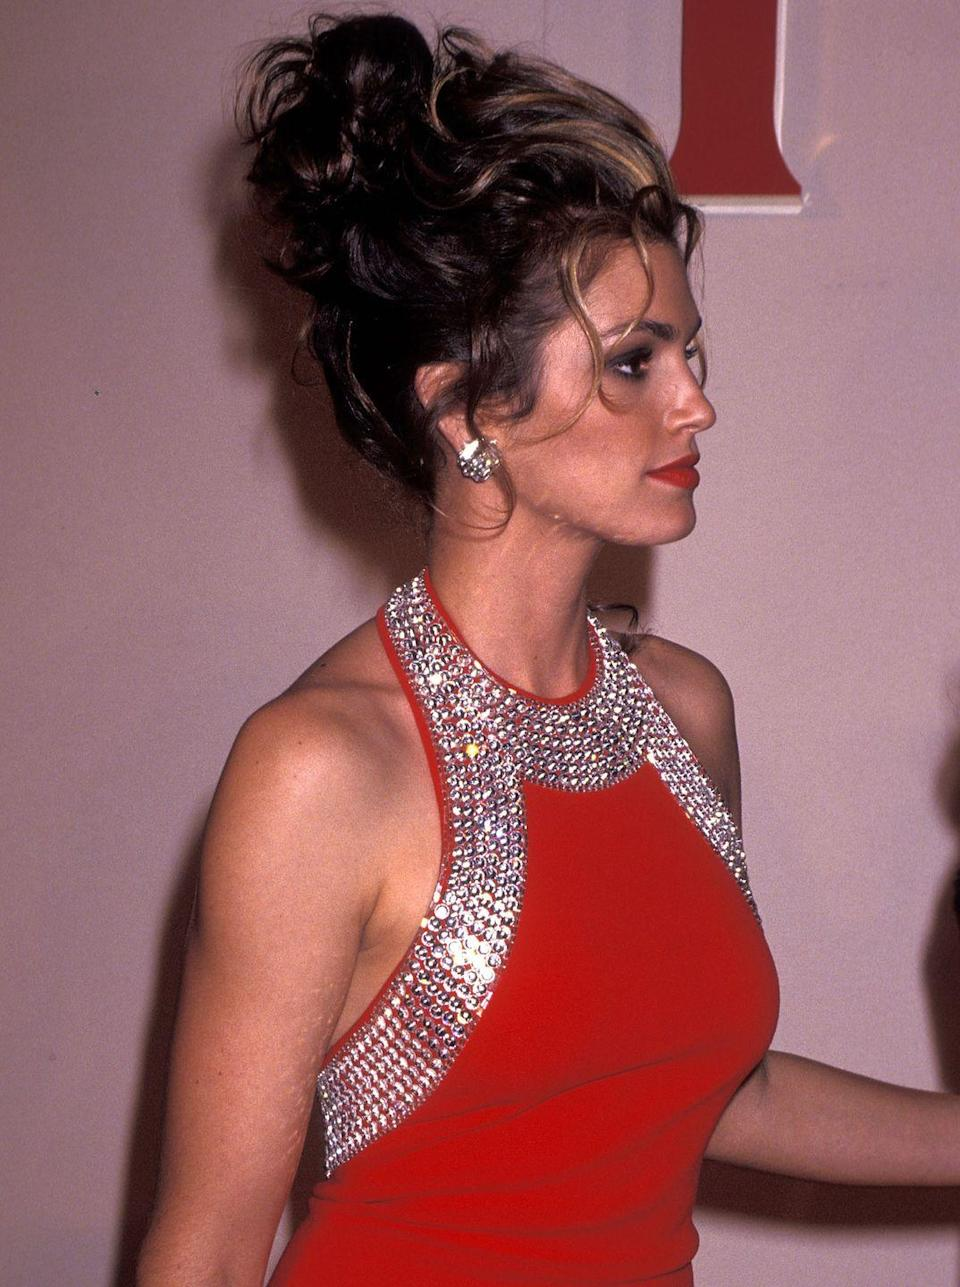 <p>Glam supermodels, including Cindy Crawford, popularized over-the-top updos with face-framing pieces.</p>